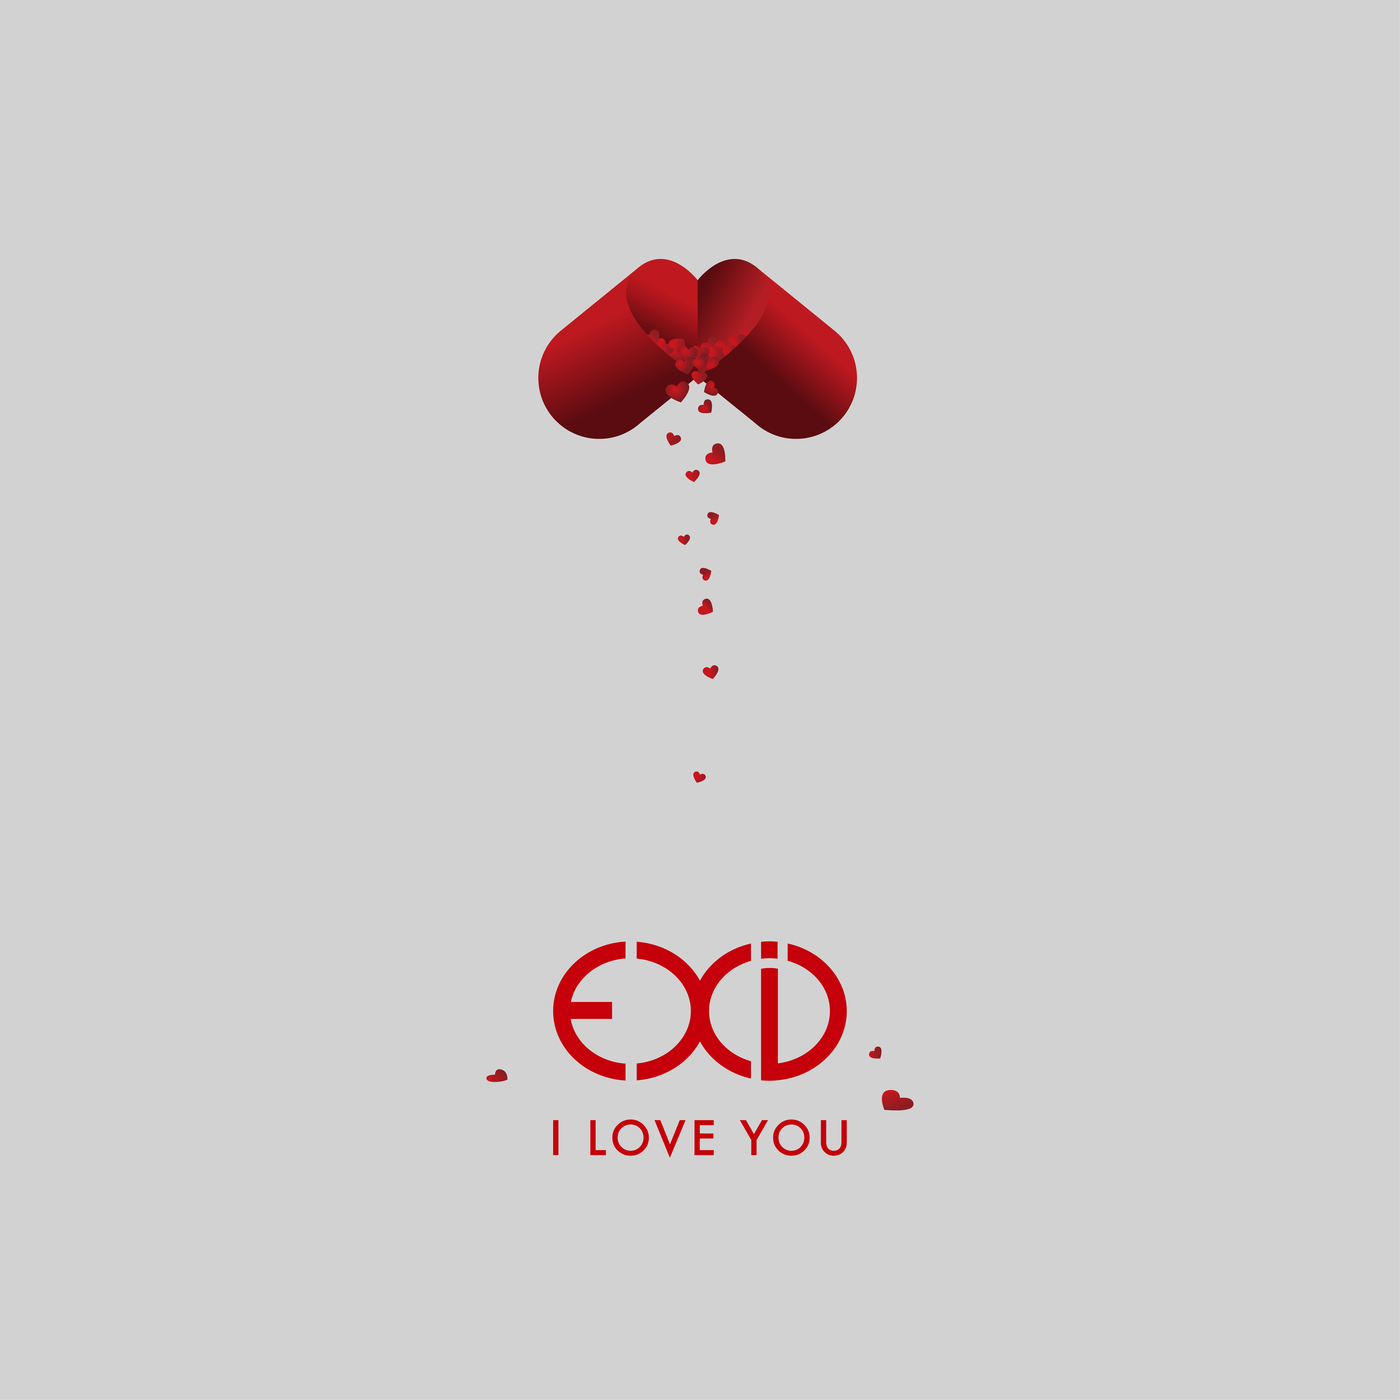 Image result for exid i love you image cover